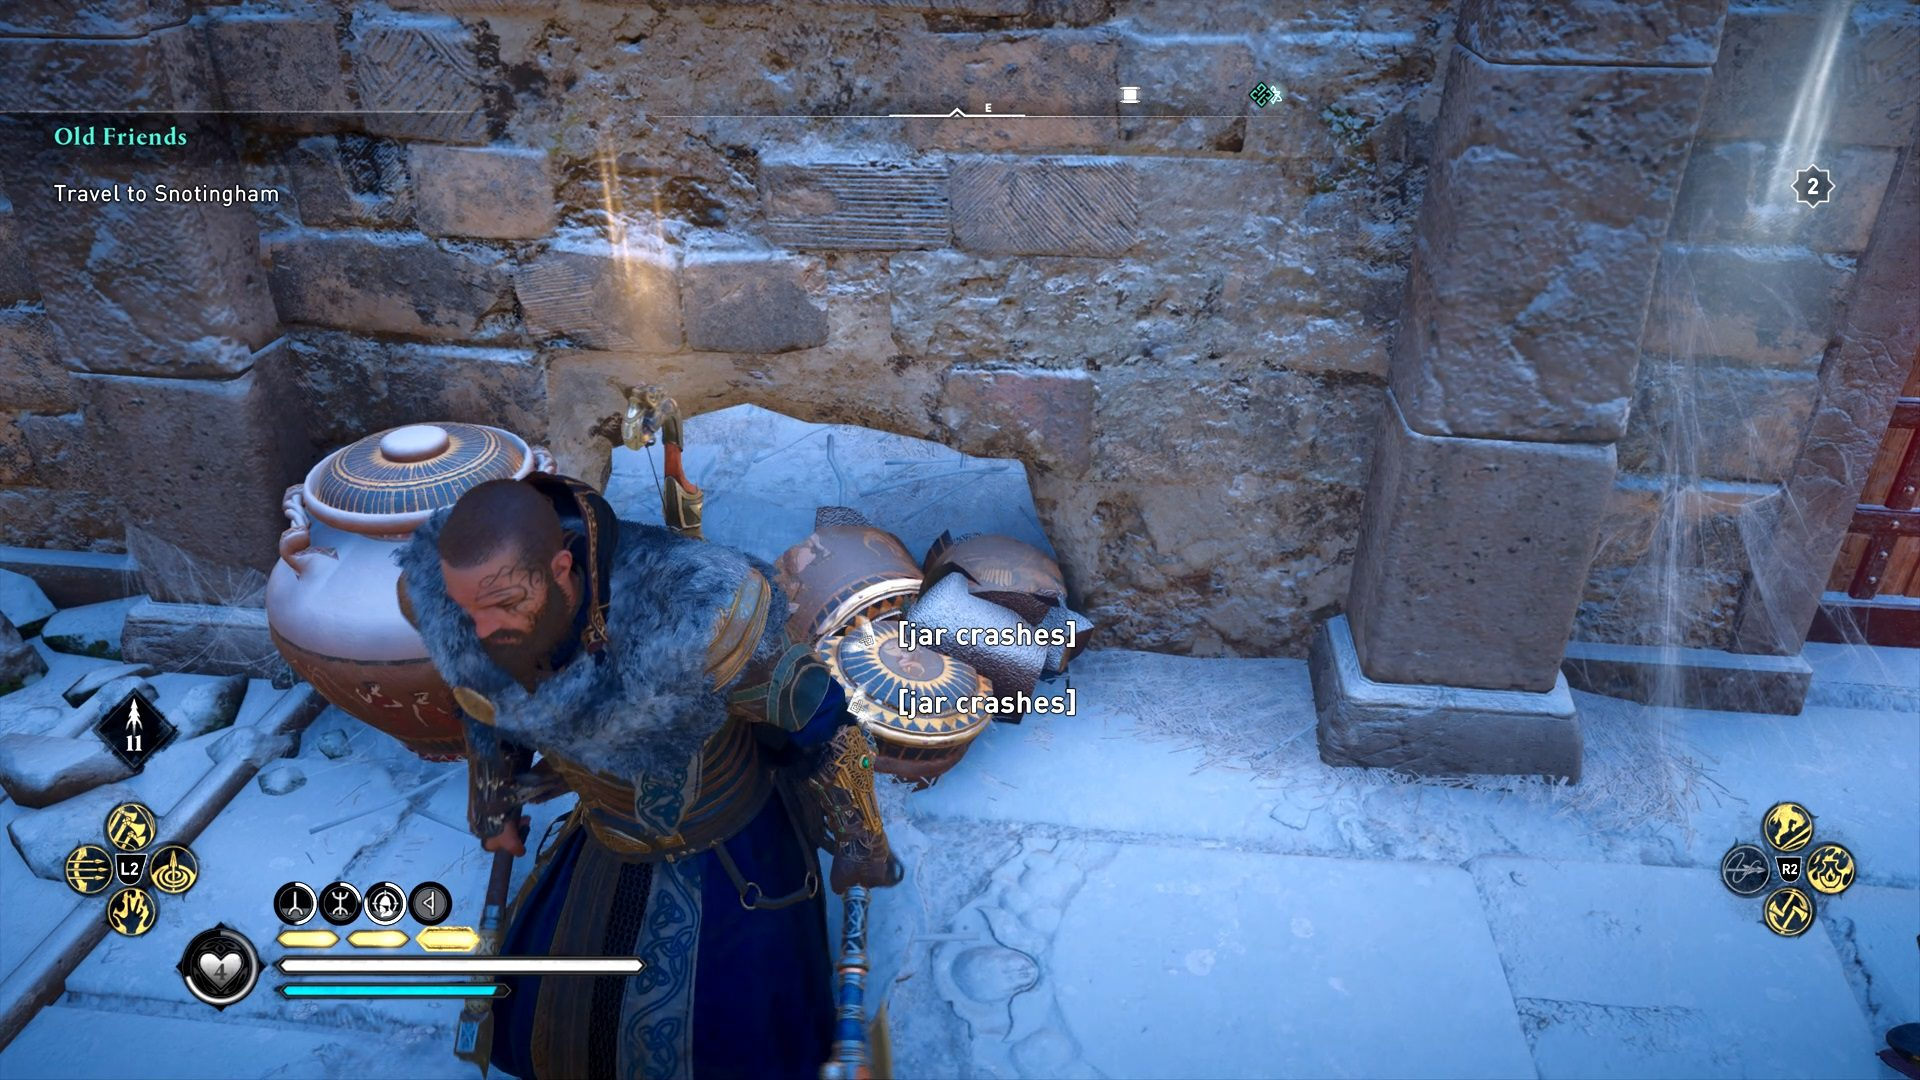 Assassin's Creed Valhalla Snotinghamscire Hoard Map